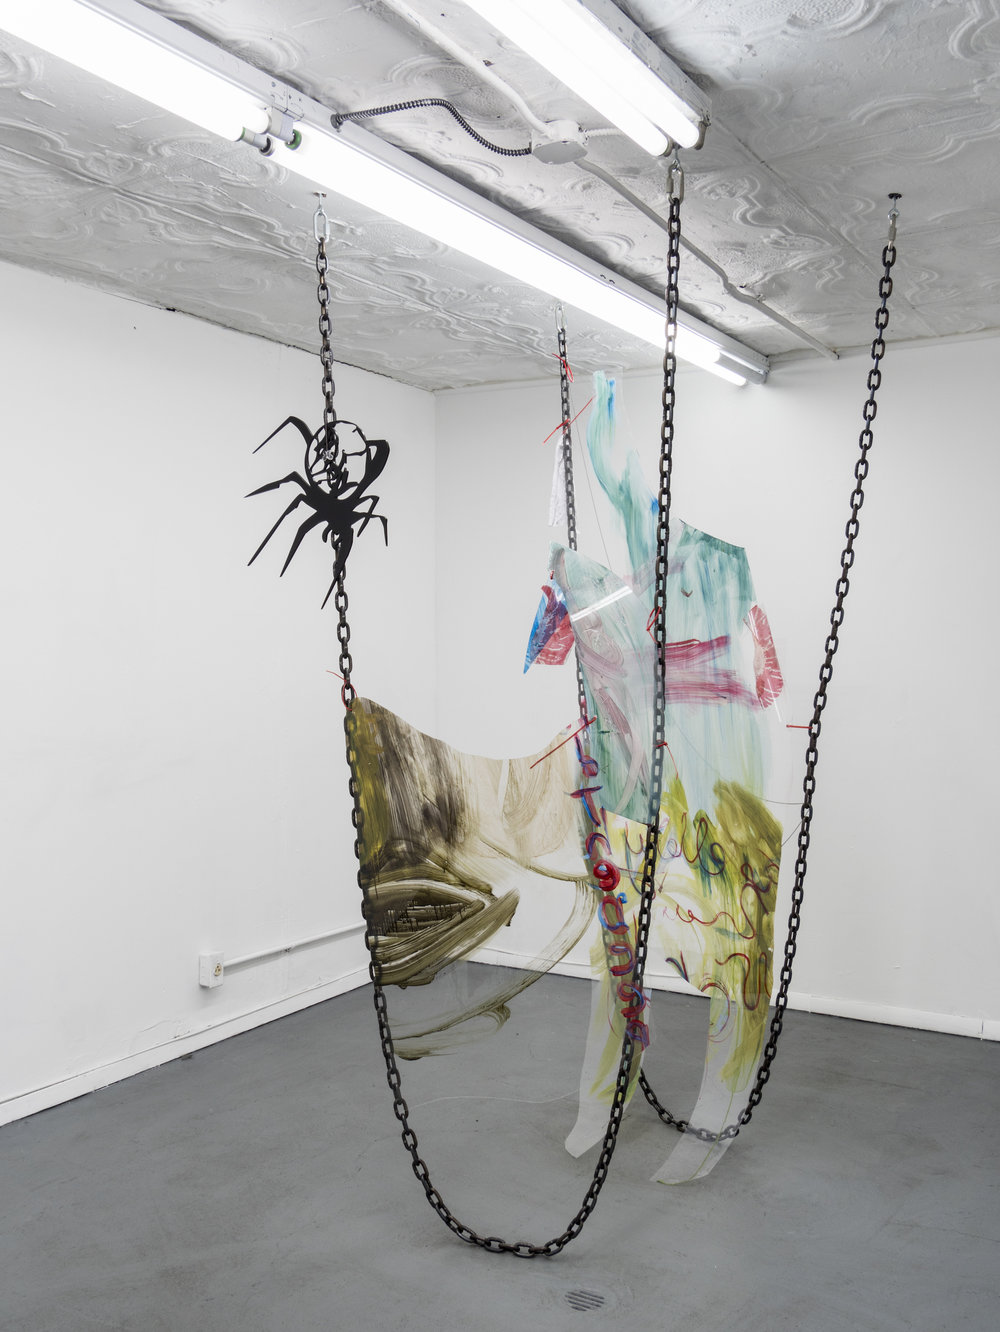 Raque Ford,  Horny Spider Butterfly,  2017, acrylic paint on polypropelene, steel chain, ball chain, butterfly bead, zip ties and acrylic, 85 x 31 in